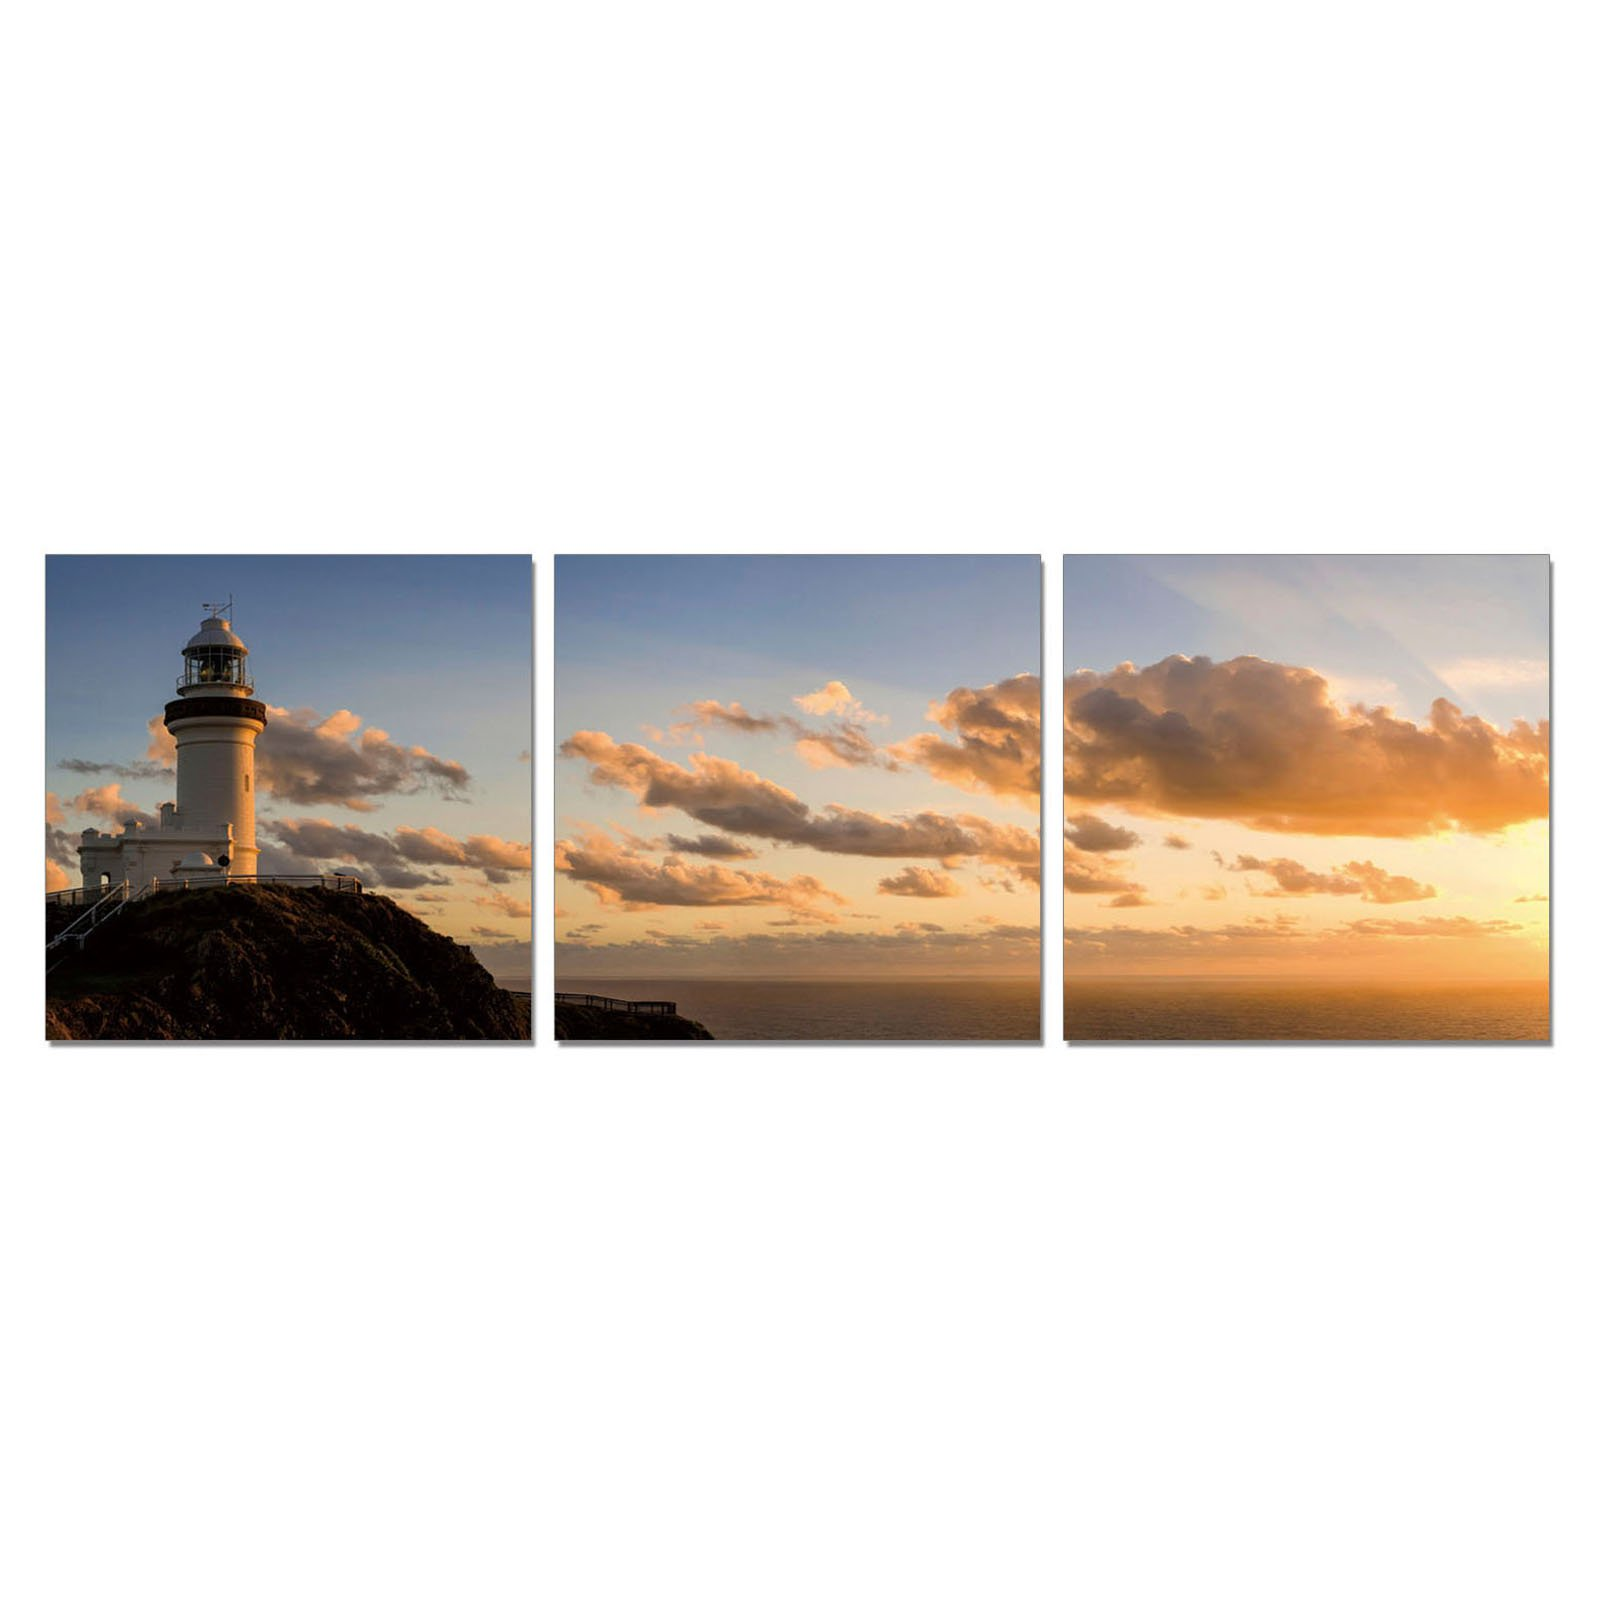 Furinno SENIC Light House 3-Panel Canvas on Wood Frame, 60 x 20-in